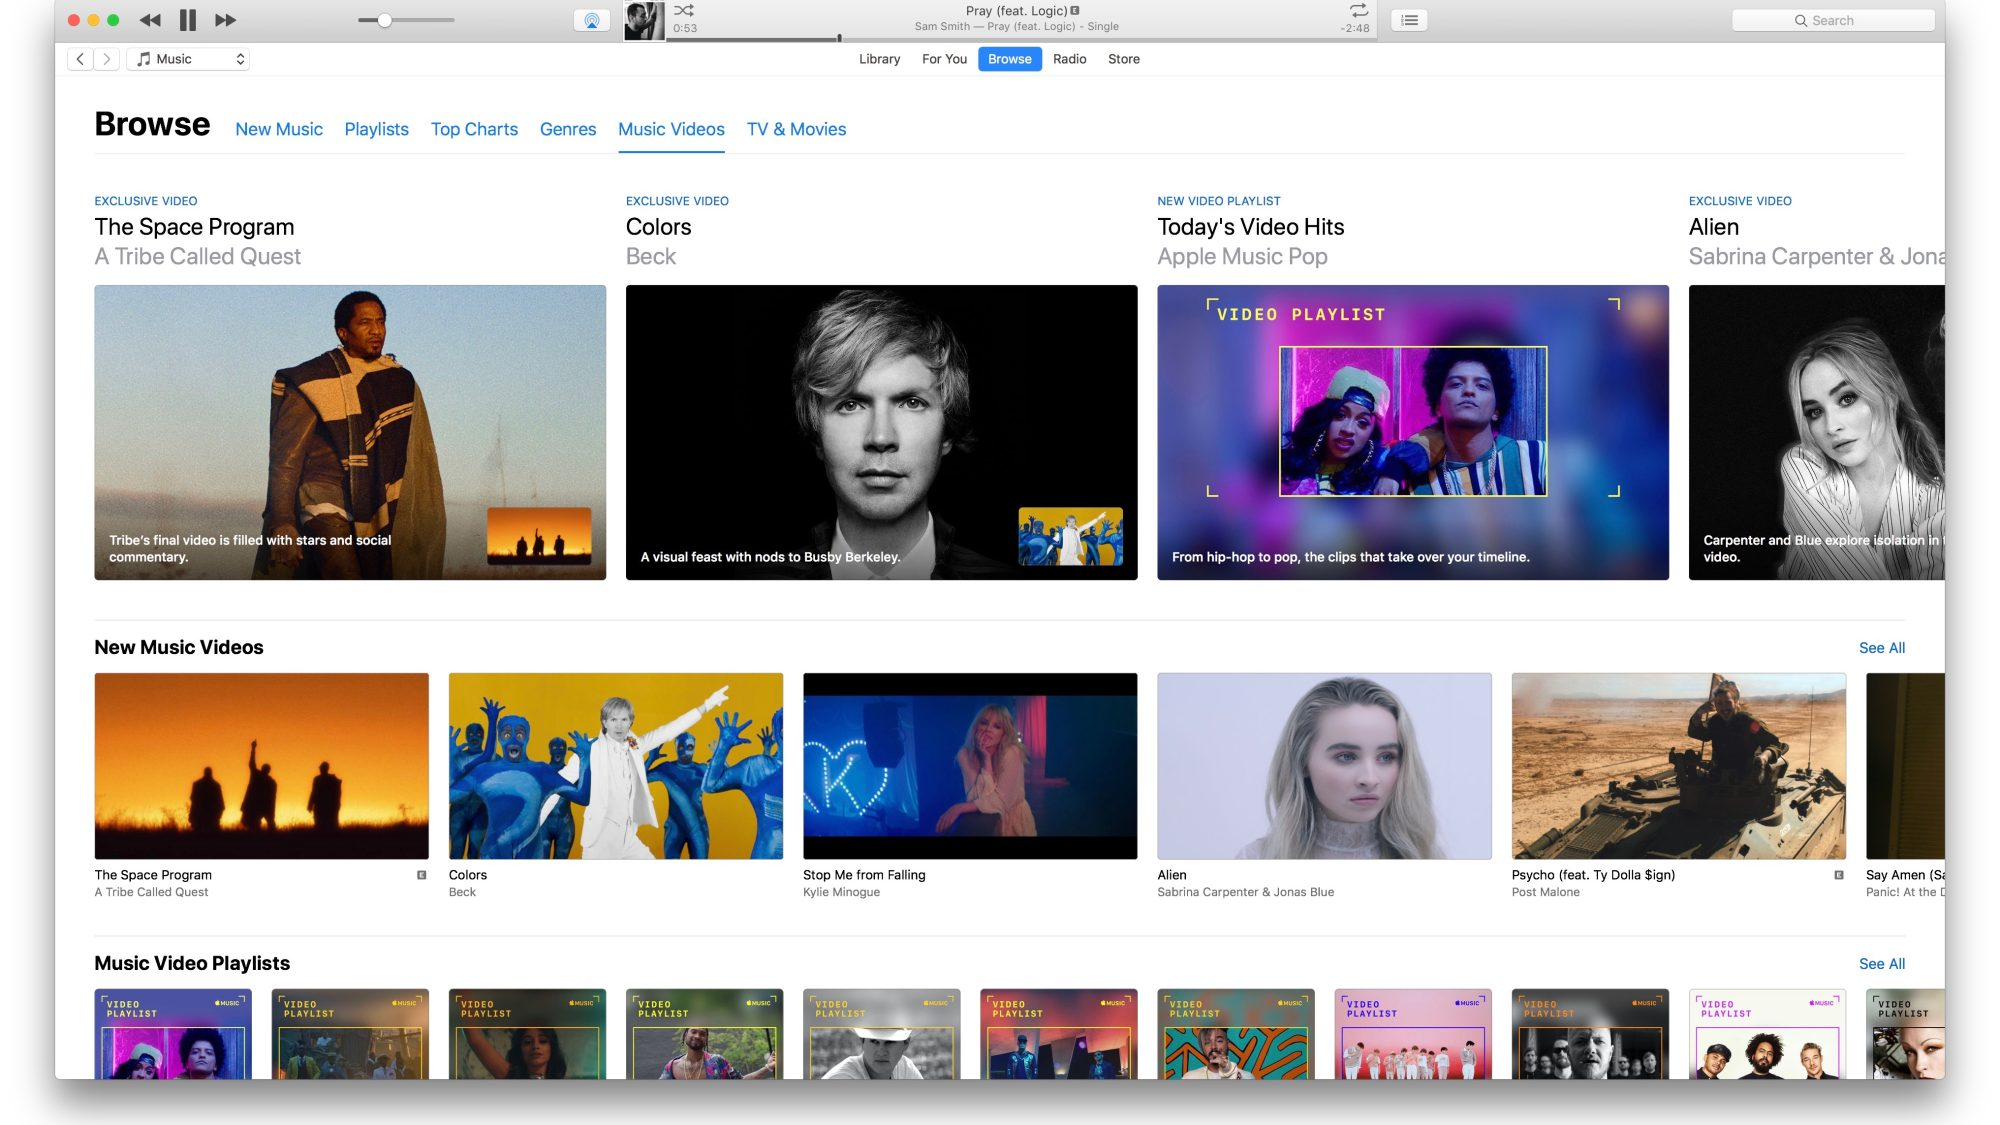 An image of iTunes, an alternative to Deezer.